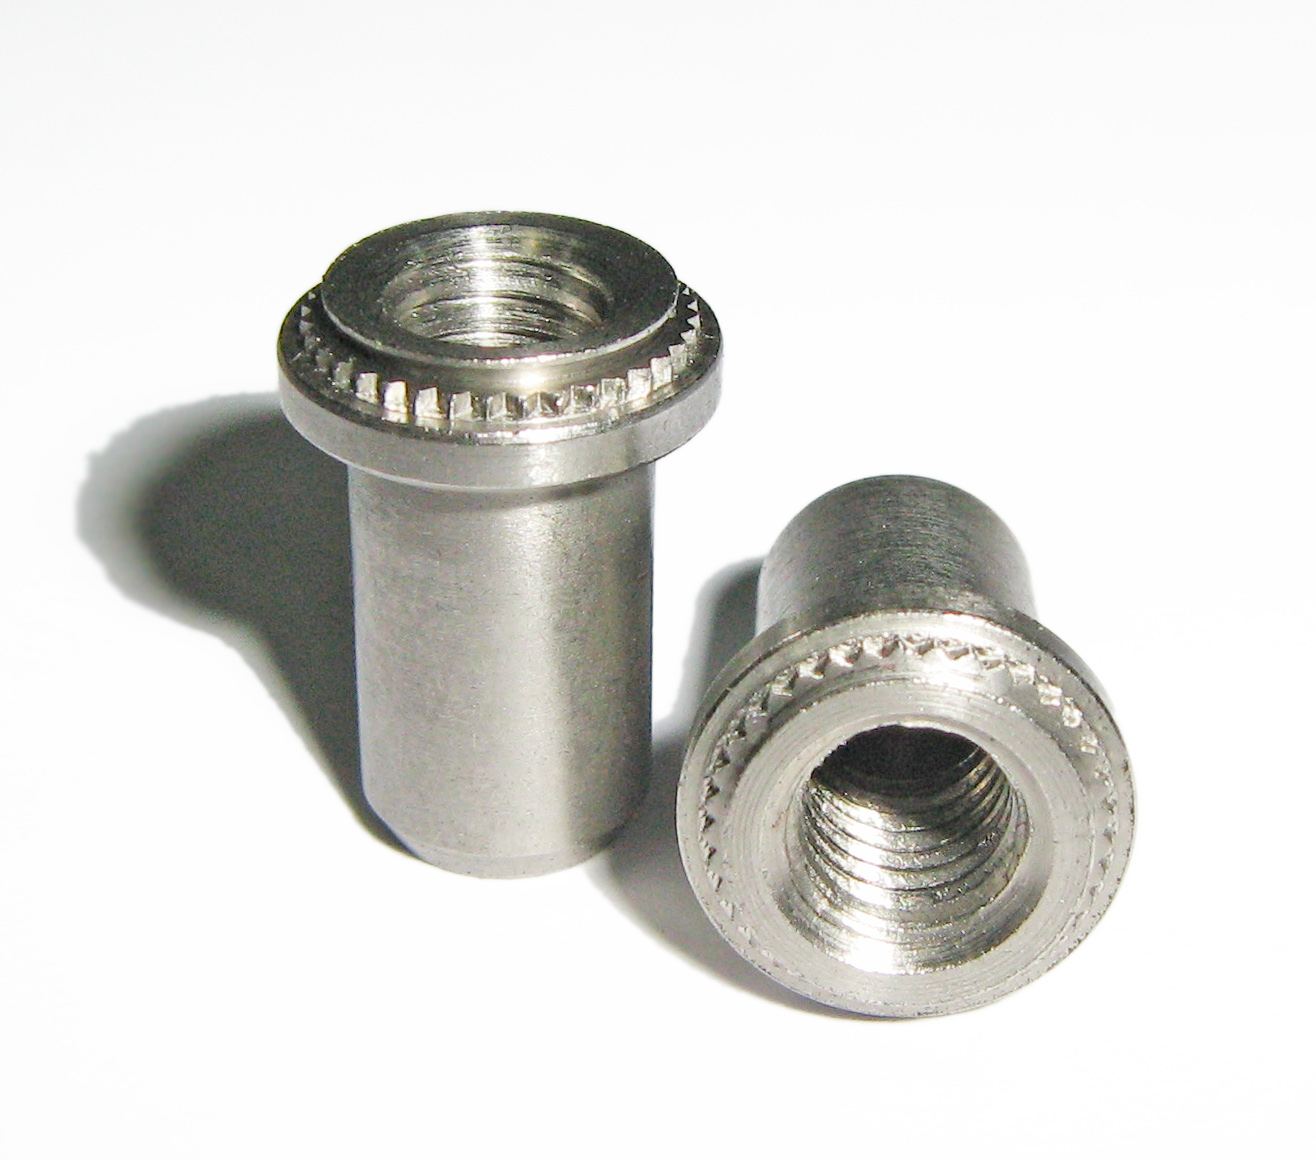 unf sheet rivet pem metal alibaba for showroom nuts blinds blind nut pull suppliers wholesale